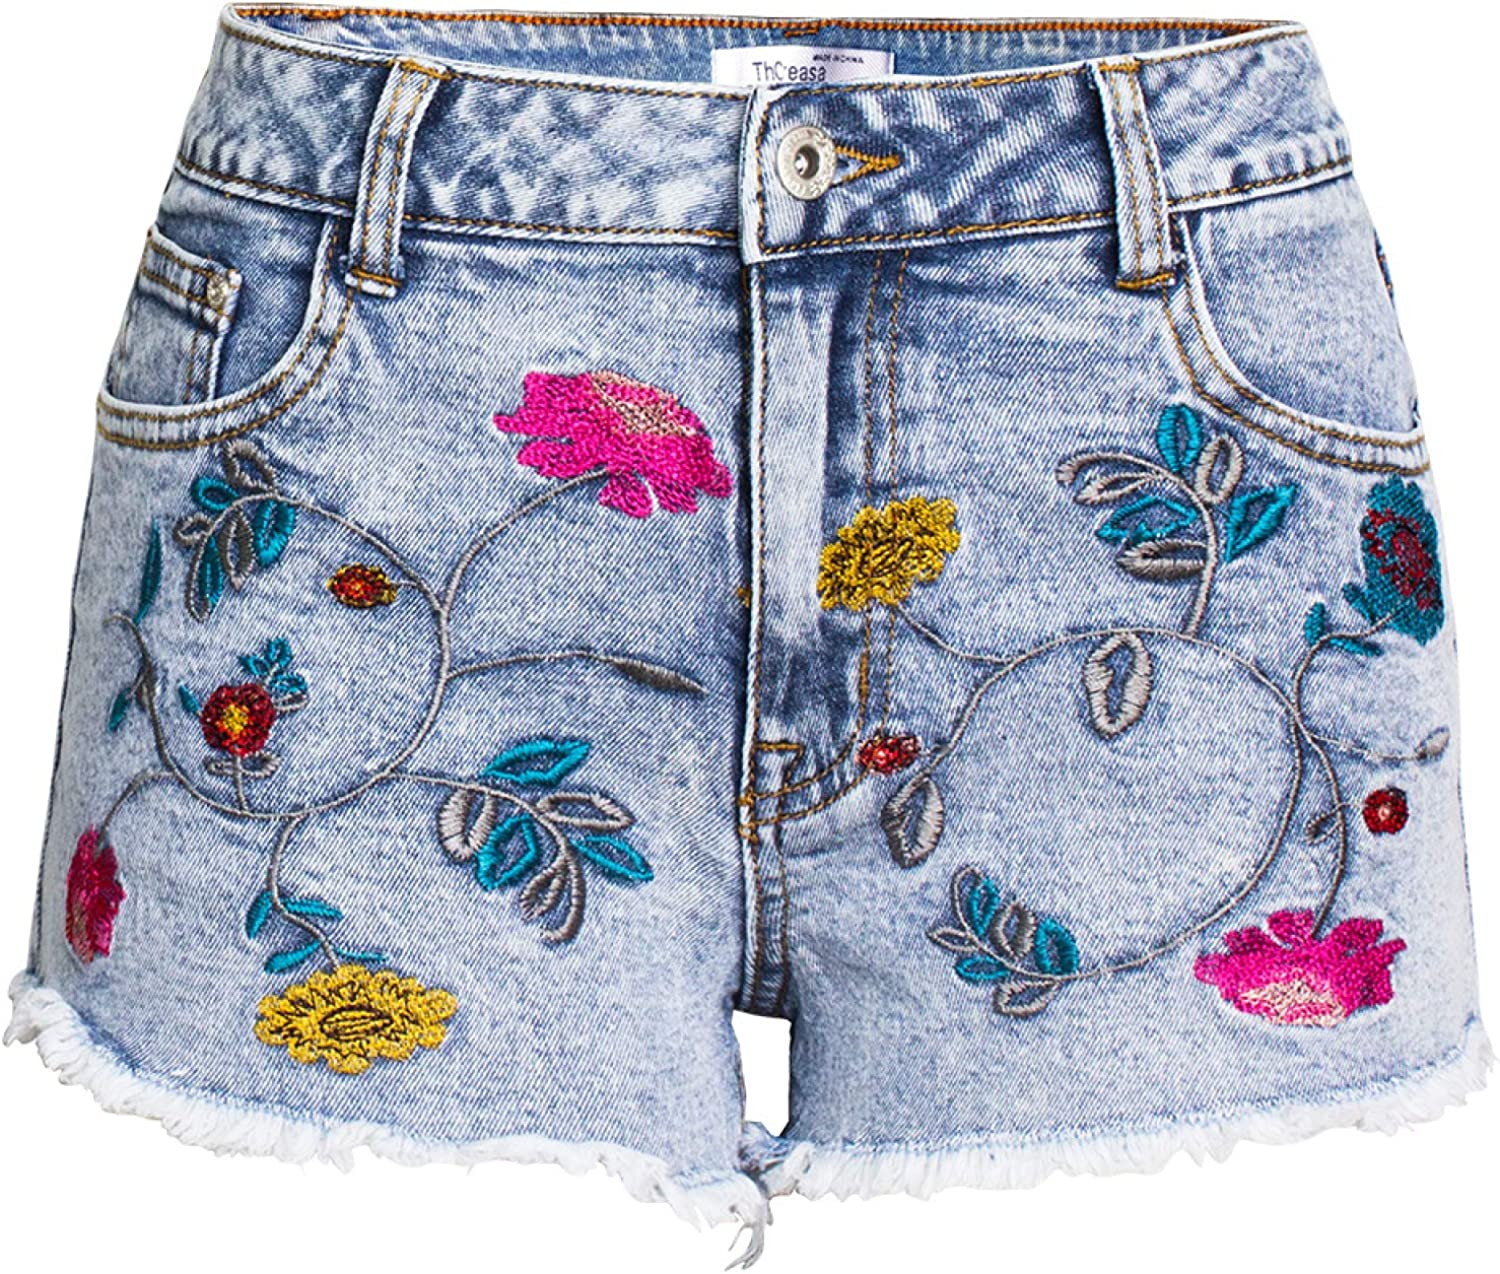 Ladies Denim Shorts Personalized Floral Embroidery Torn Edges Slim Fit Double